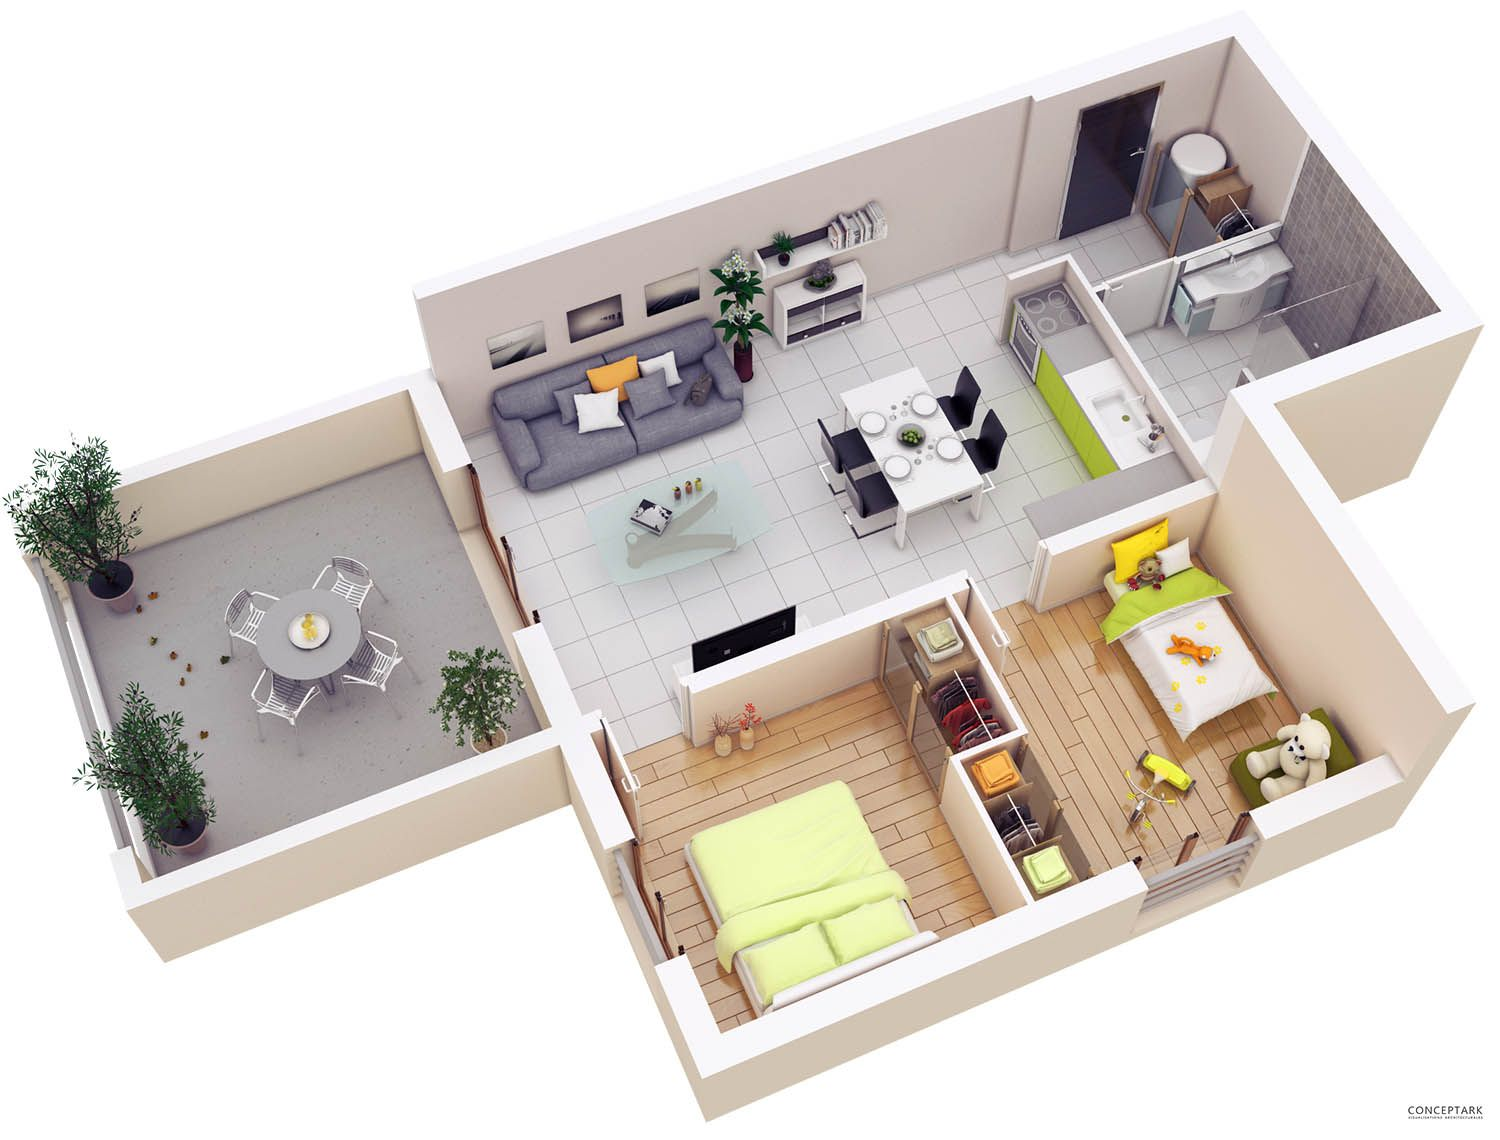 25 More 2 Bedroom 3D Floor Plans | Amazing Architecture Online